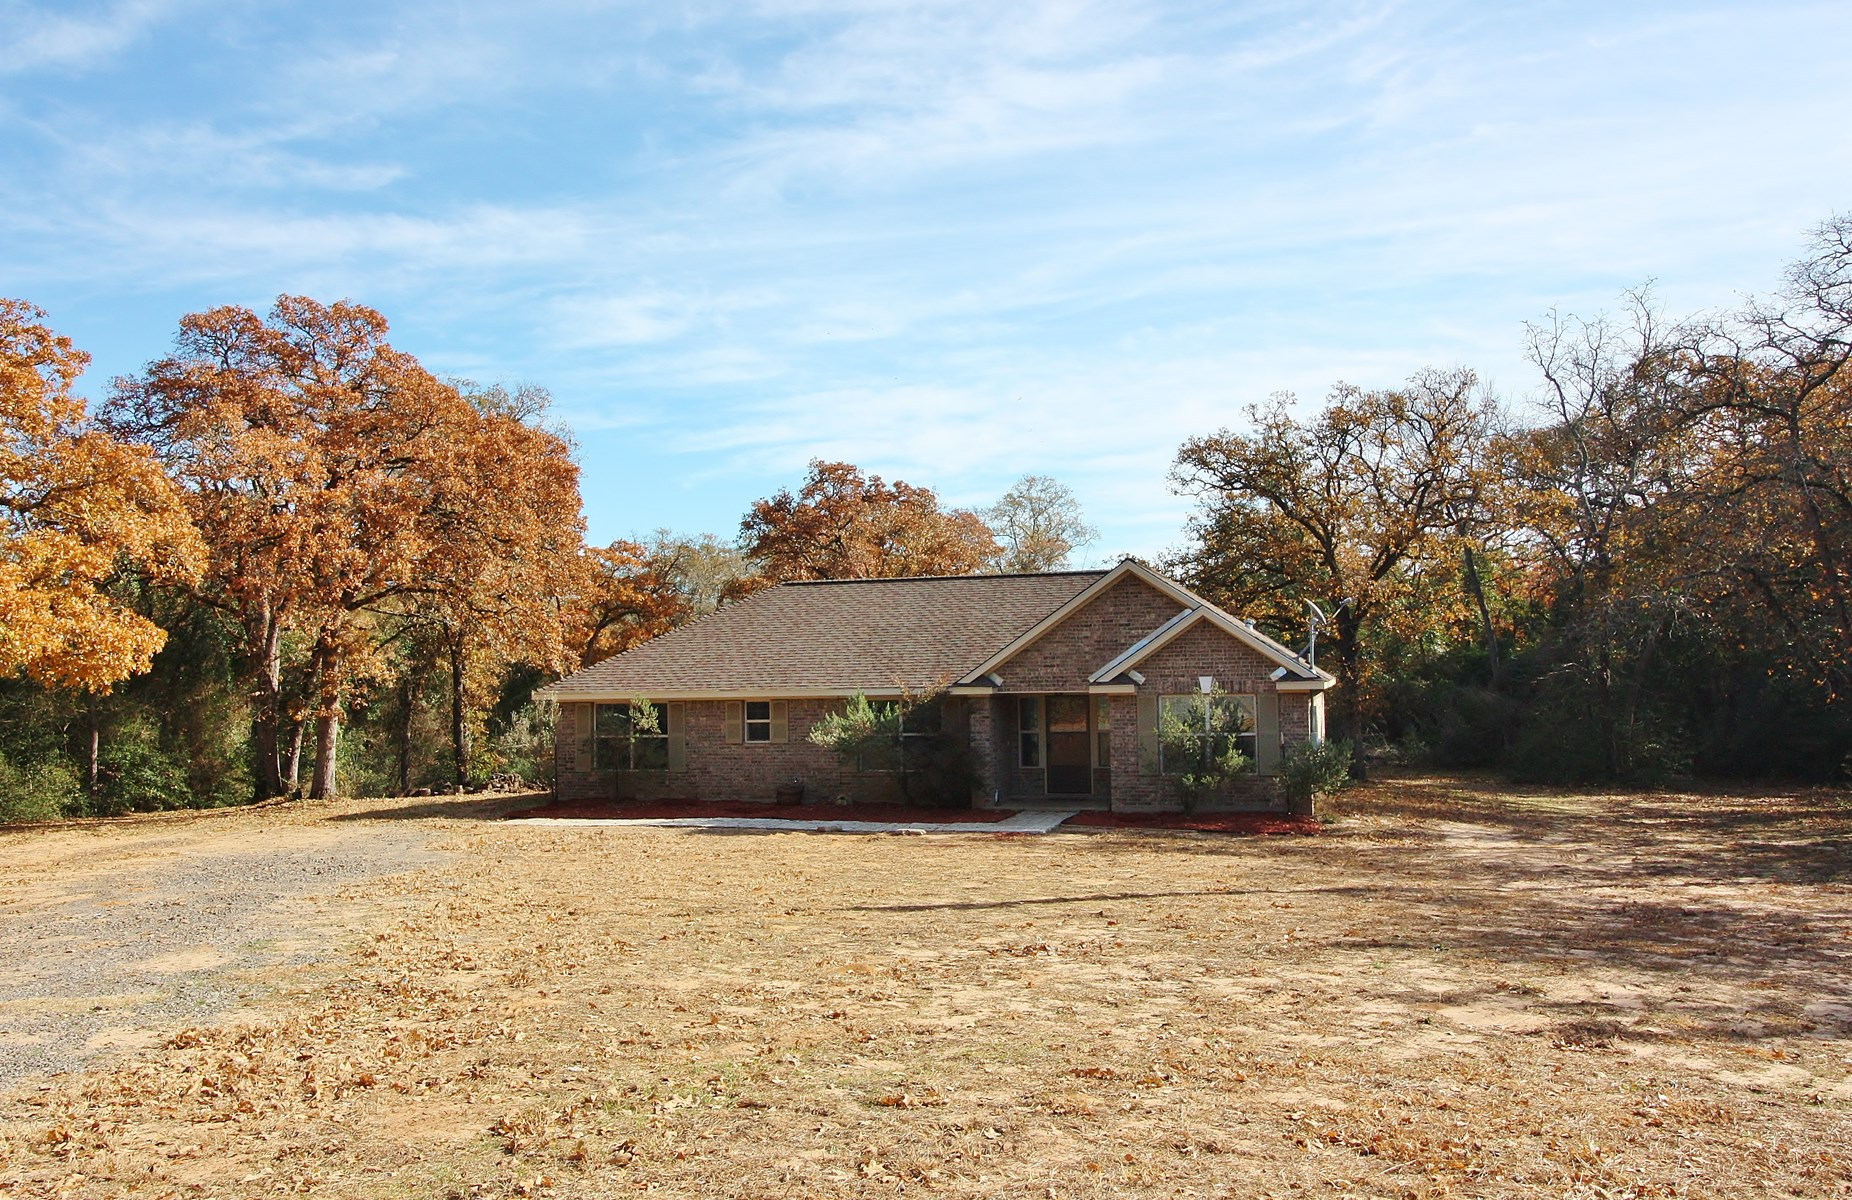 Beautiful Home on Acreage For Sale in Leon County, TX